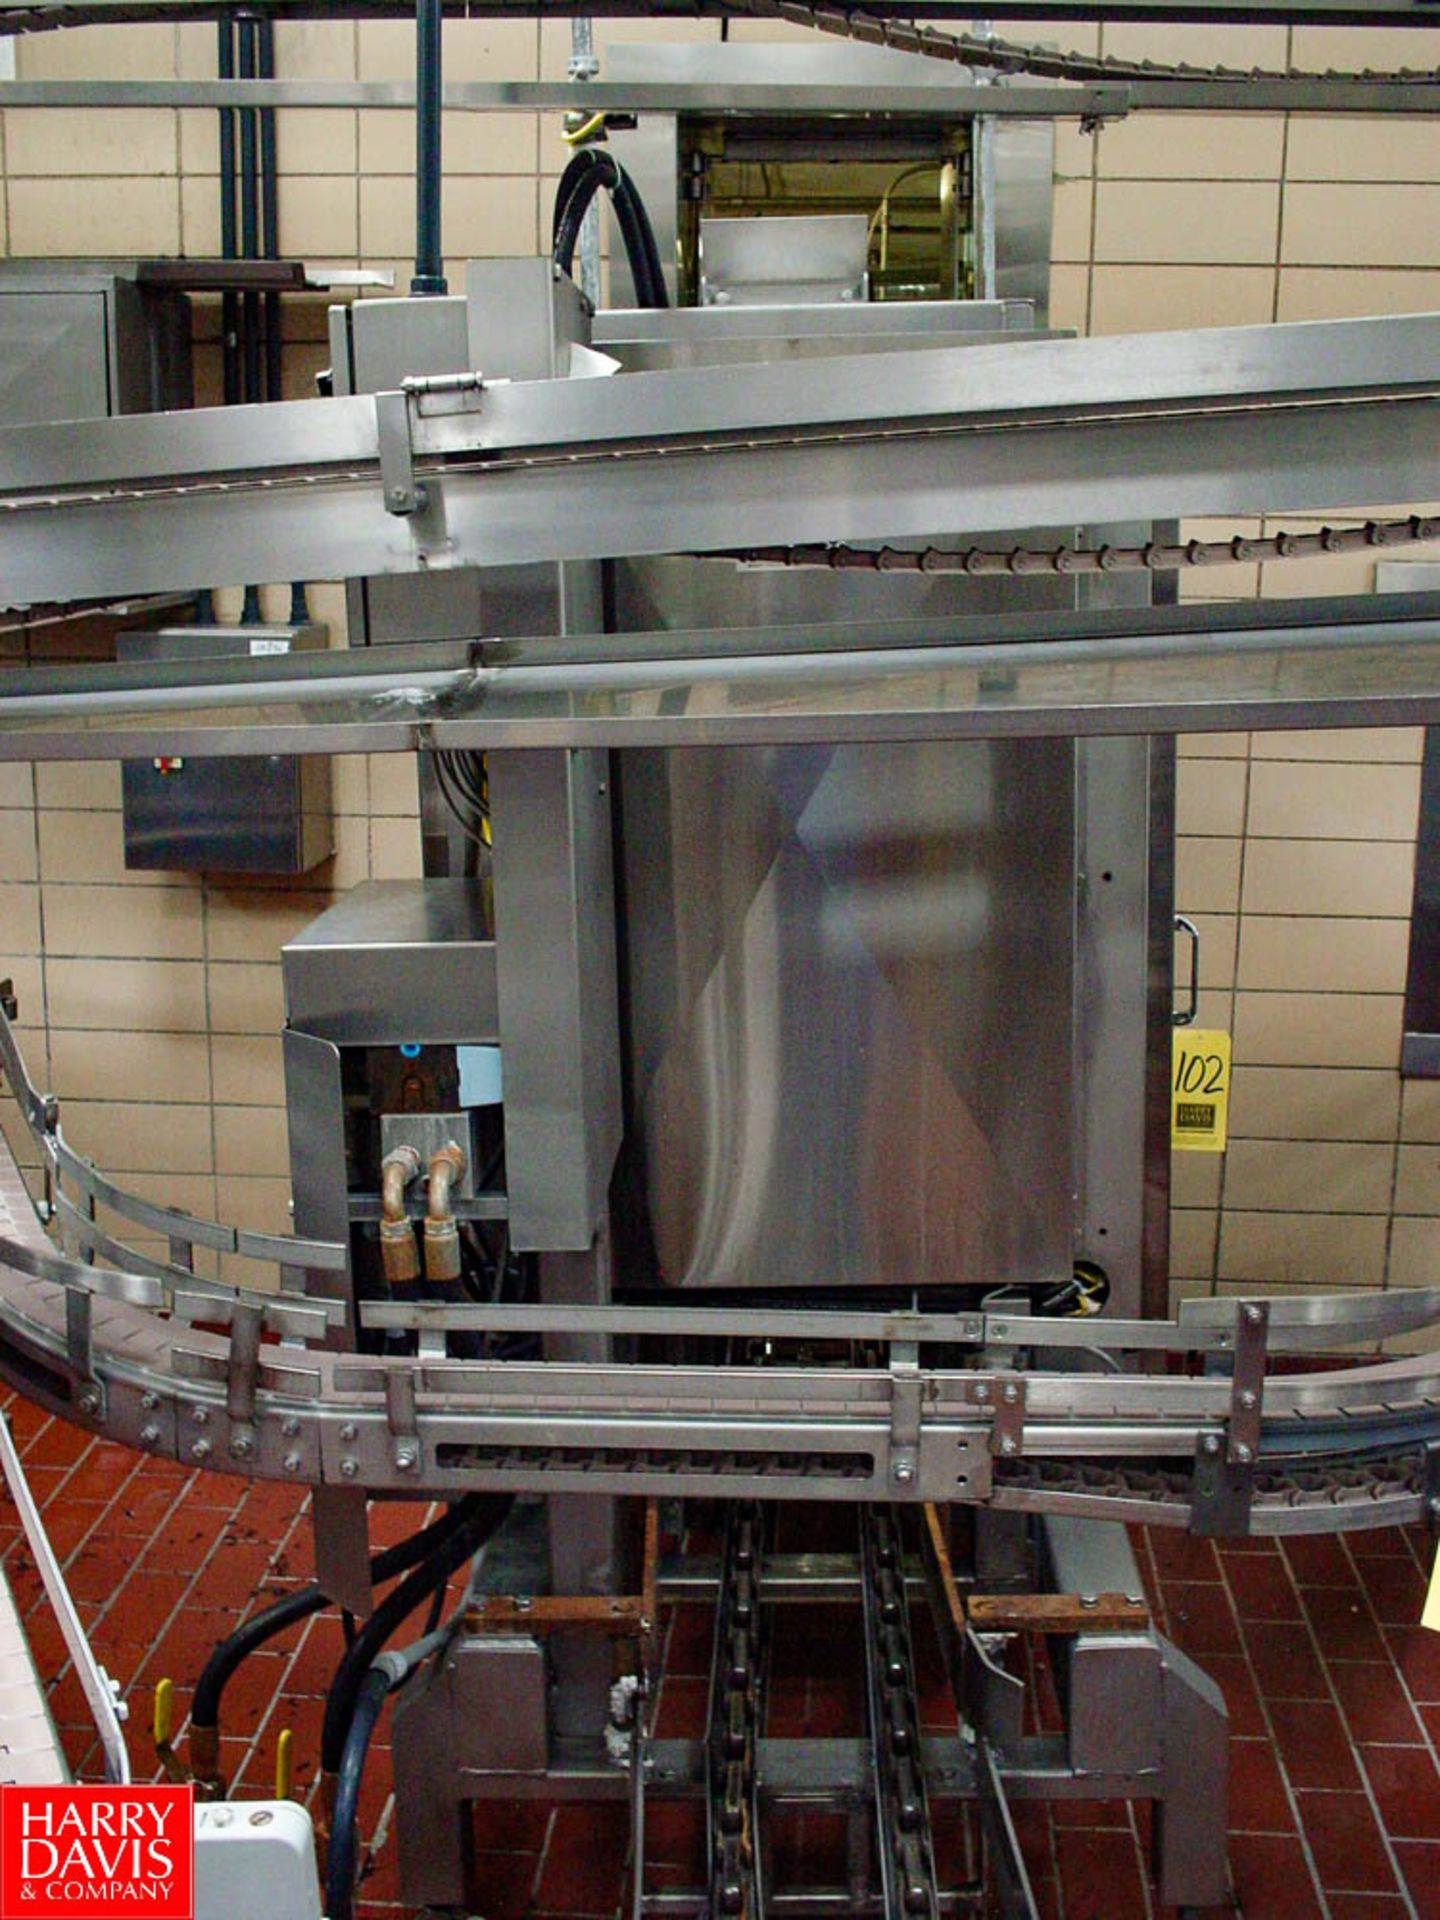 Lot 102 - DAIRY CONVEYOR STAINLESS STEEL SINGLE CASER STACKER - Rigging Fee: $ 500